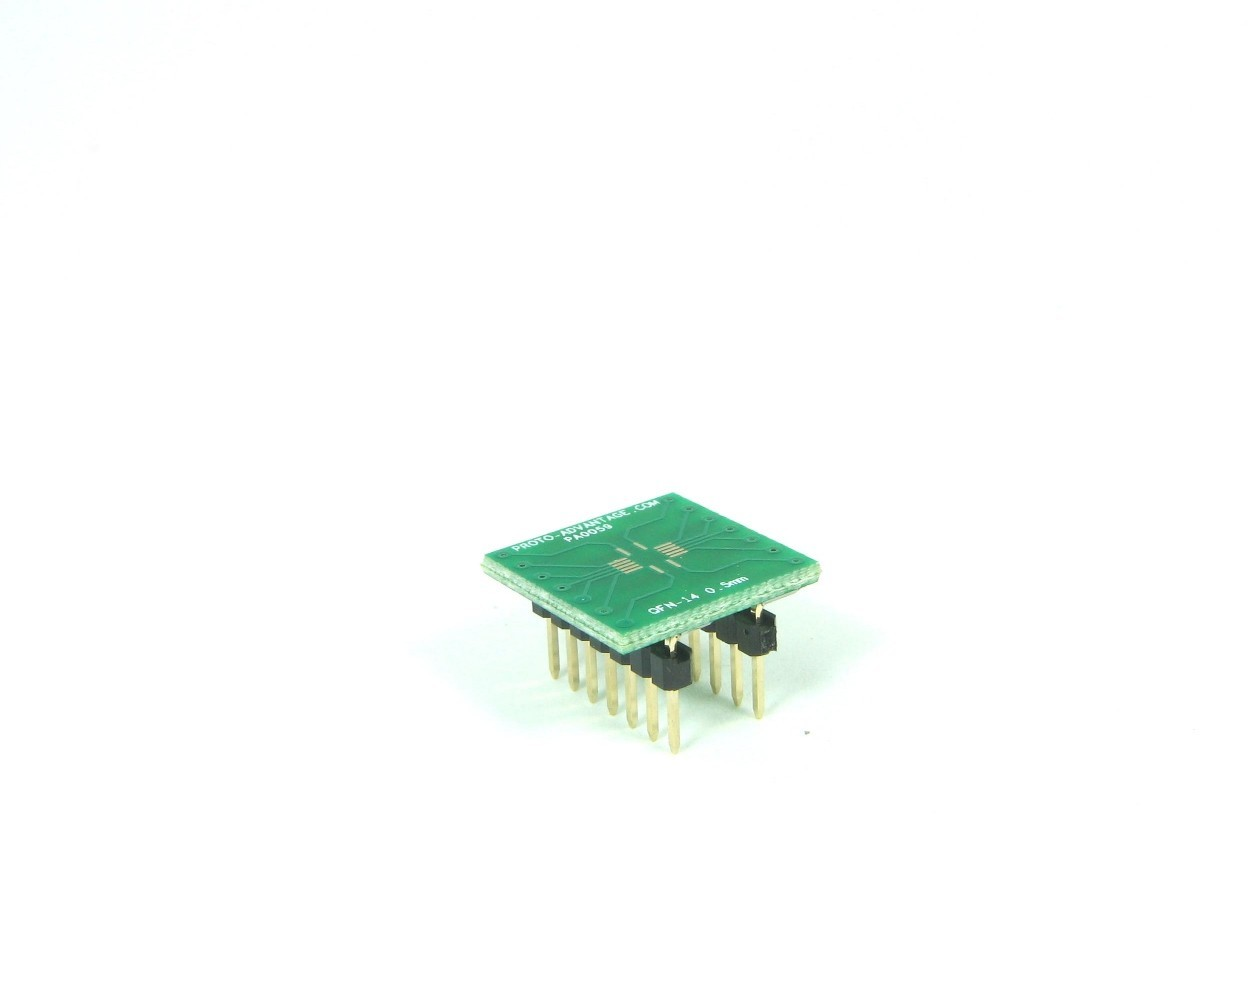 QFN-14 to DIP-14 SMT Adapter (0.5 mm pitch, 3.5 x 3.5 mm body)